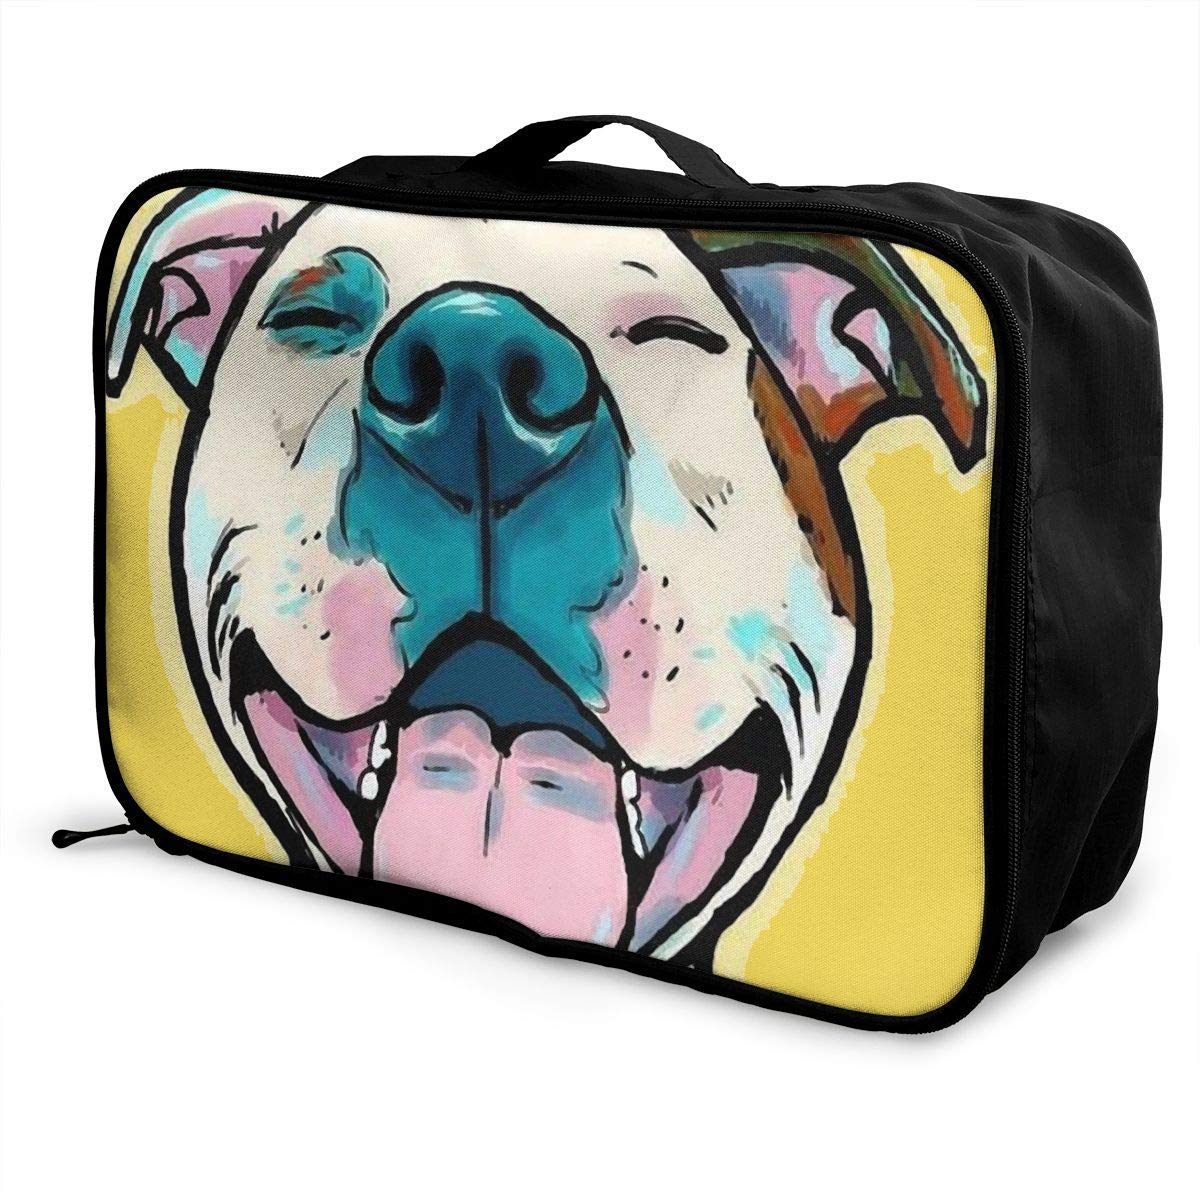 Portable Luggage Duffel Bag Pit Bull Cartoon Pit Bull Smile Travel Bags Carry-on in Trolley Handle JTRVW Luggage Bags for Travel